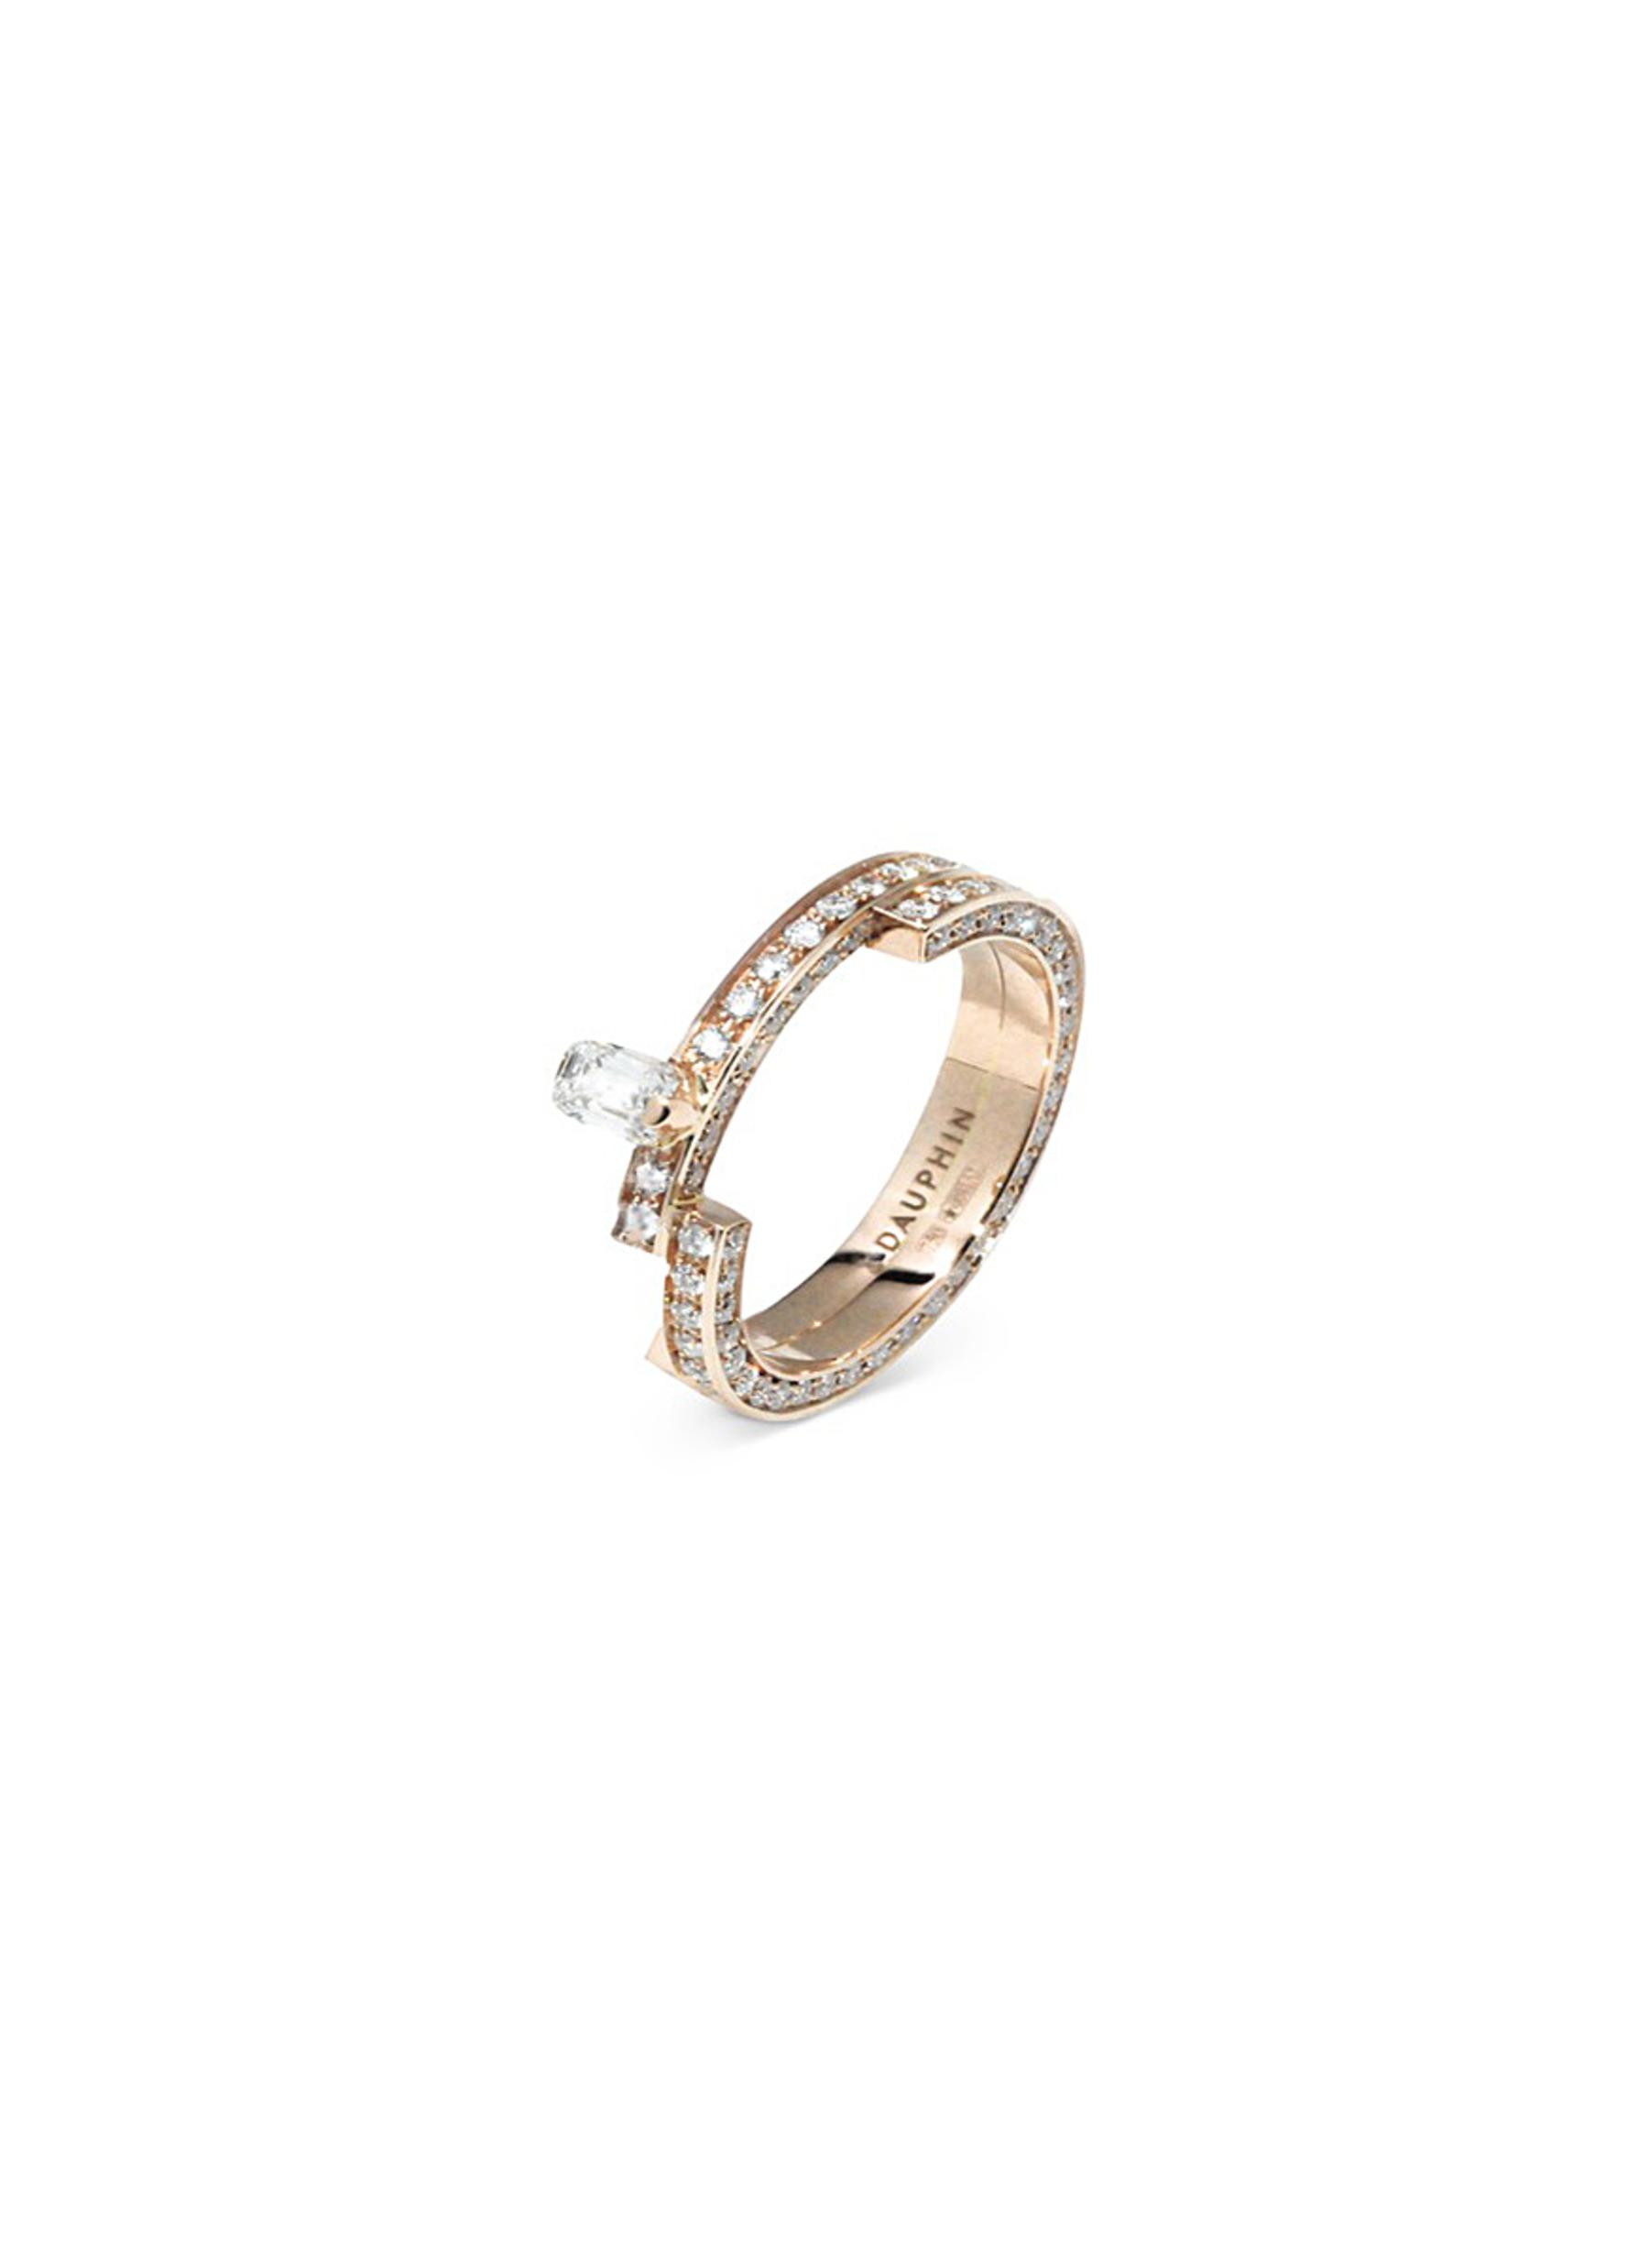 'DISRUPTIVE' PAVÉ DIAMOND 18K ROSE GOLD TWO TIER RING